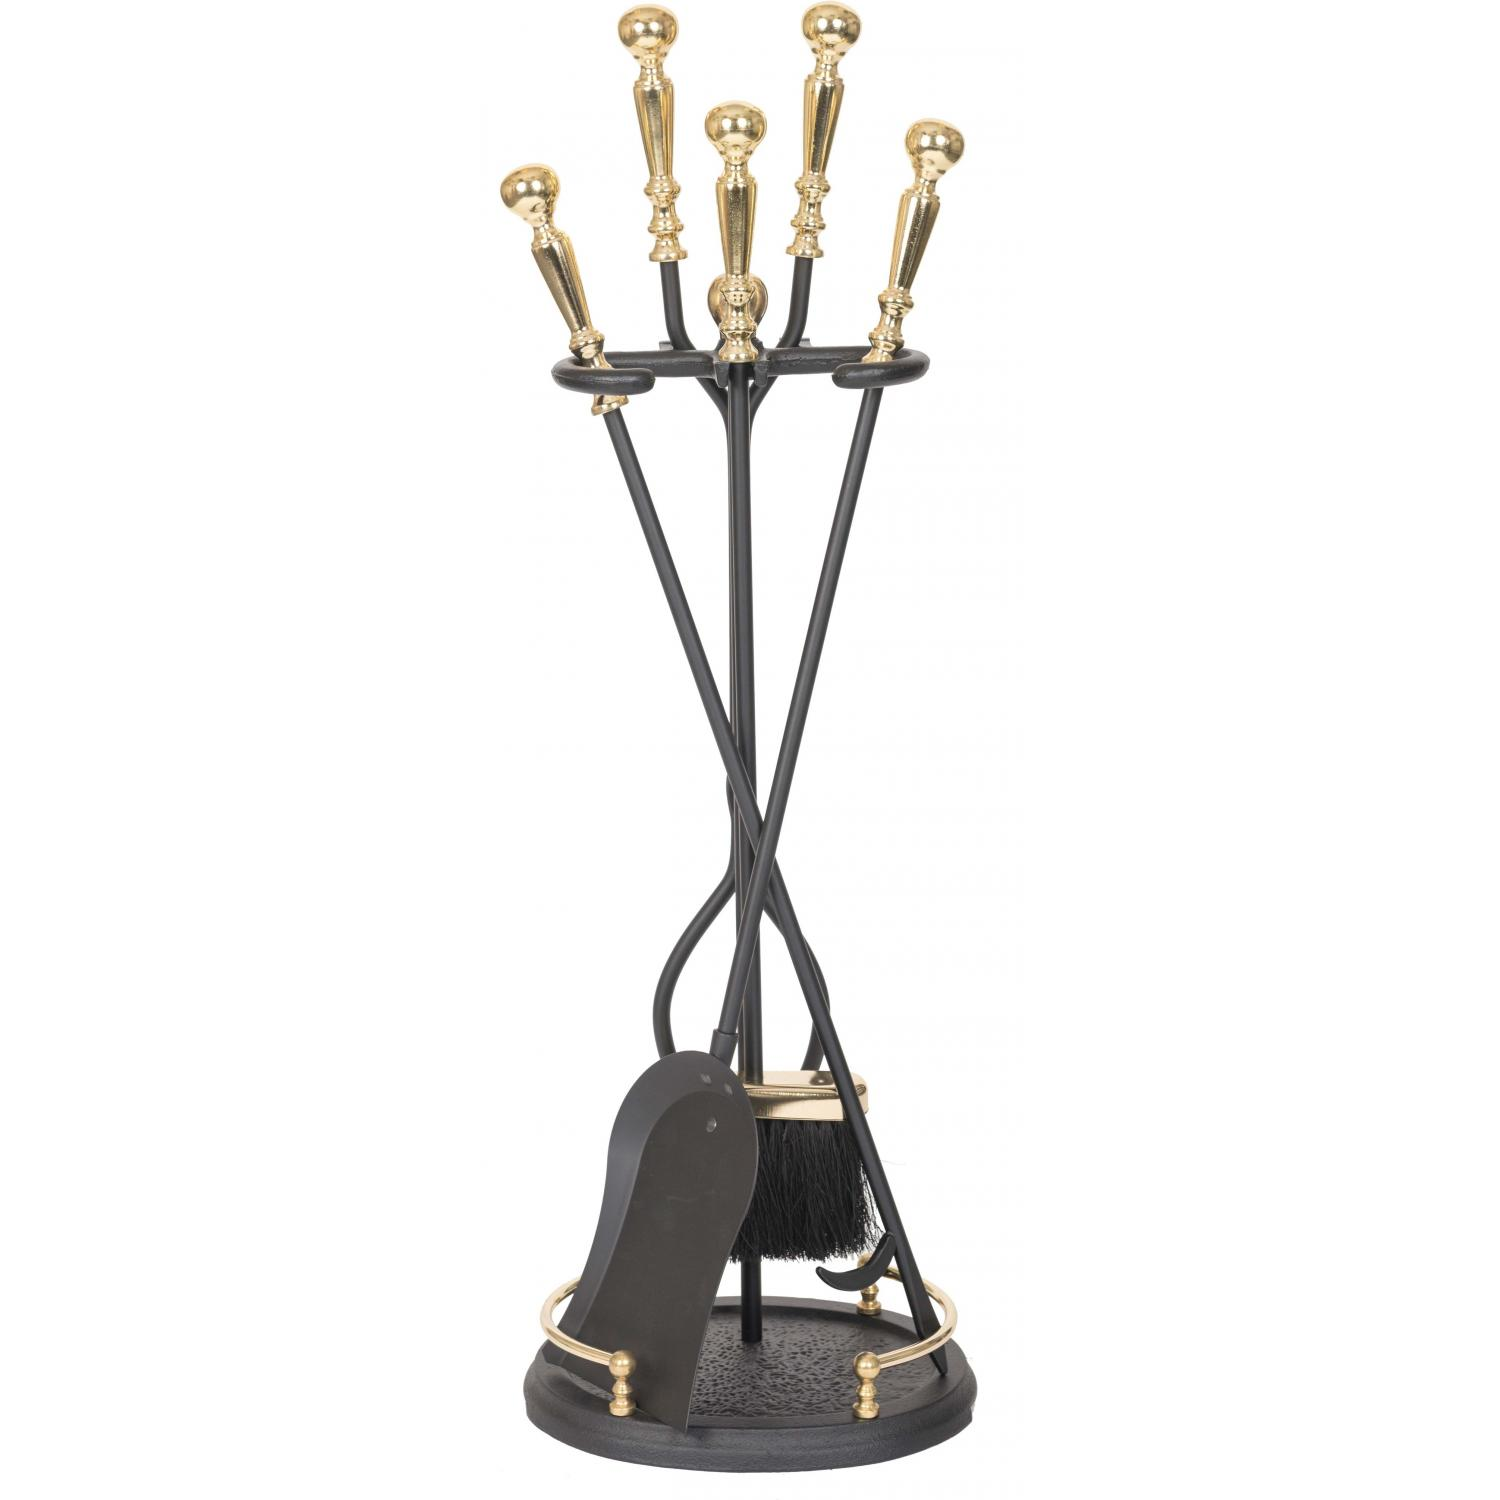 Picture of Alpine Flame 5-Piece Brass/Black Fireplace Tool Set